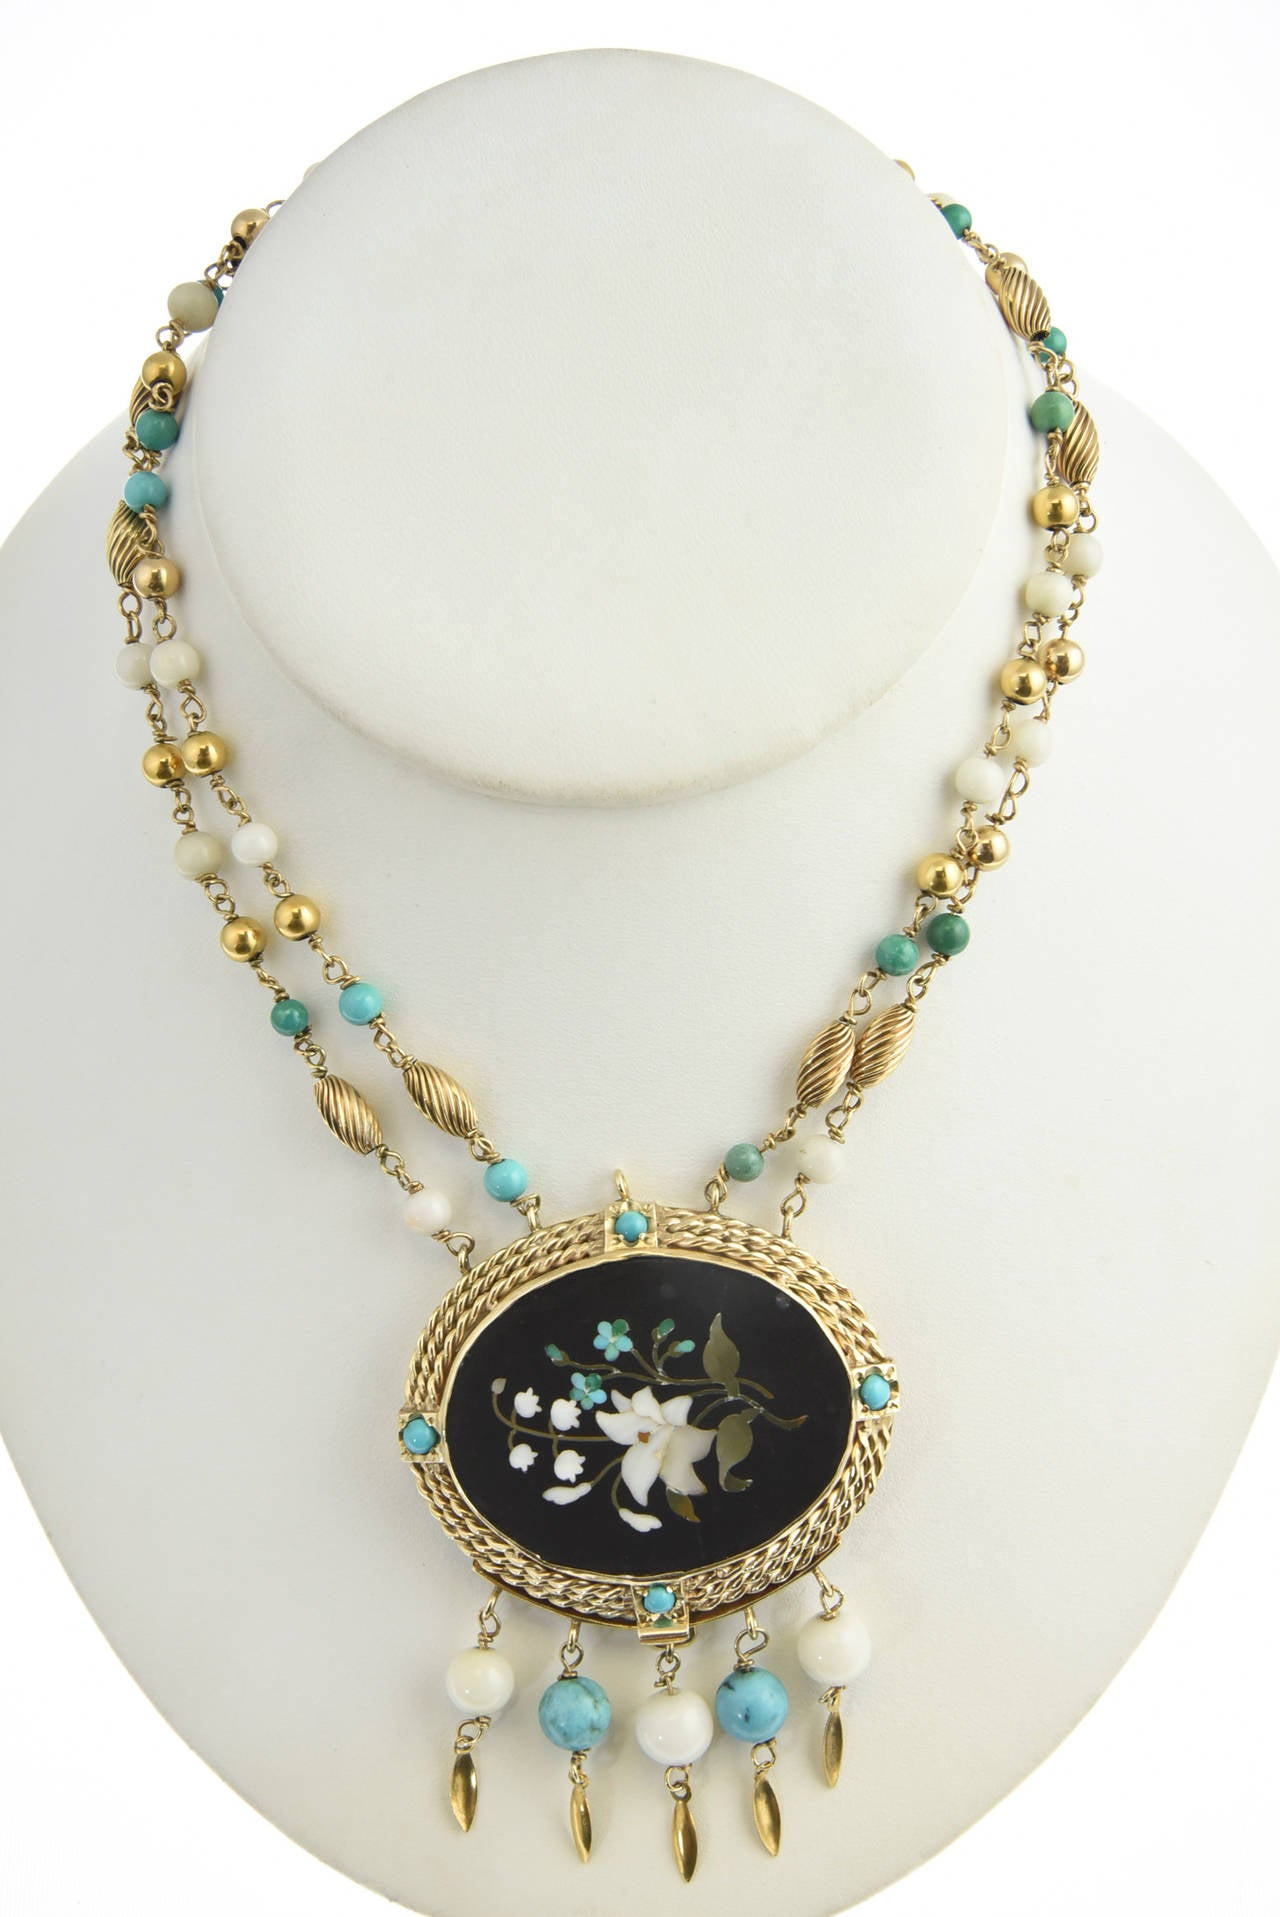 Cleopatra Inspired Turquoise and Gold Necklace with Victorian Pietra Dura Clasp 7